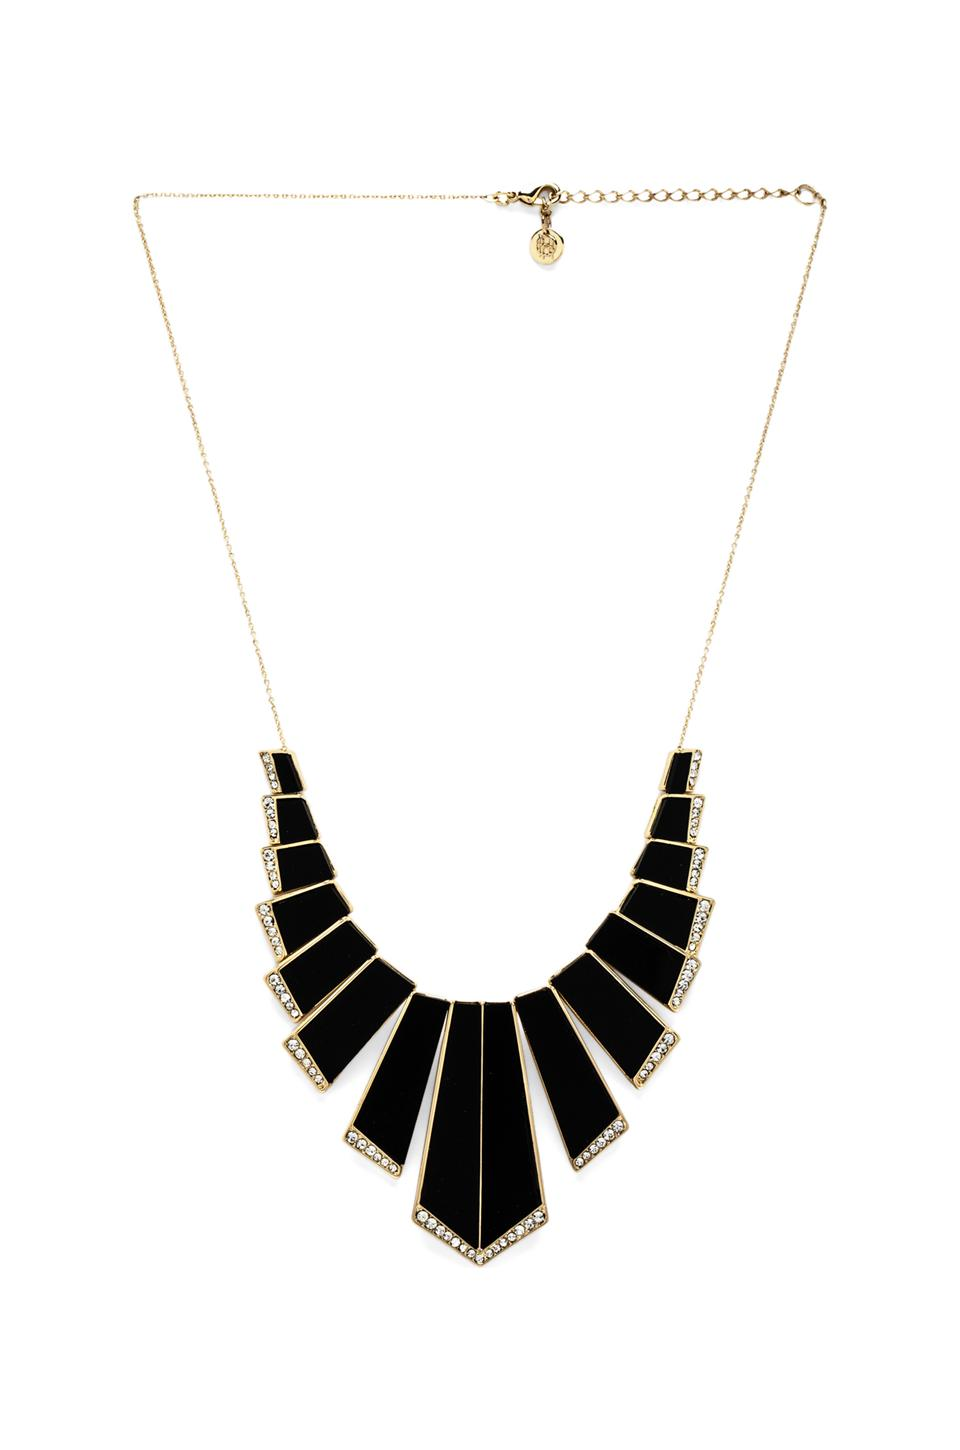 House of Harlow 1960 House of Harlow Nouveau Necklace in Gold & Black